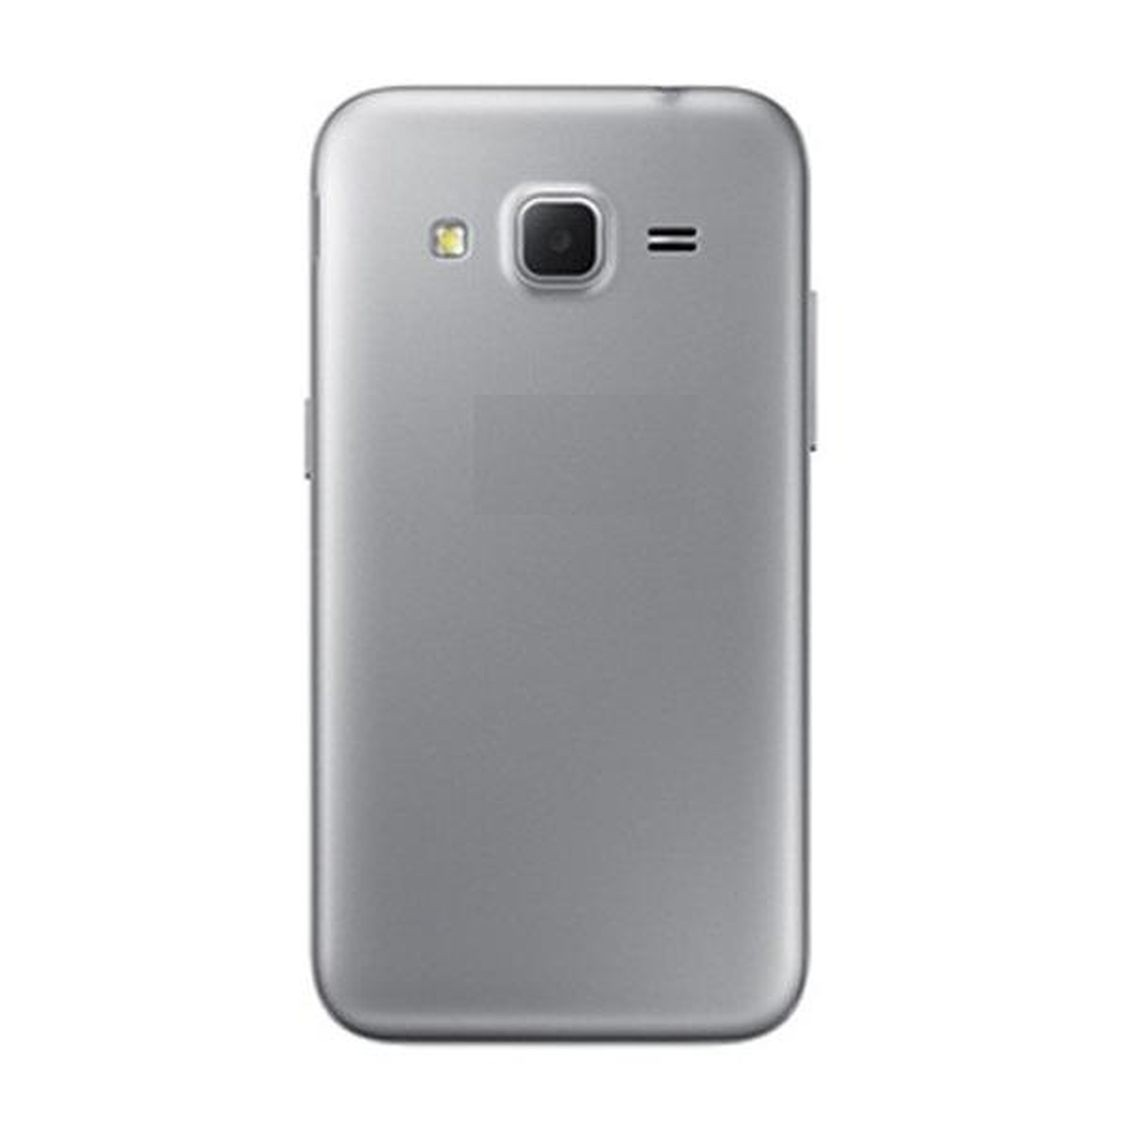 huge discount c1c47 0ccdf Back Panel Cover for Samsung Galaxy Core Prime 4G Dual Sim - Grey